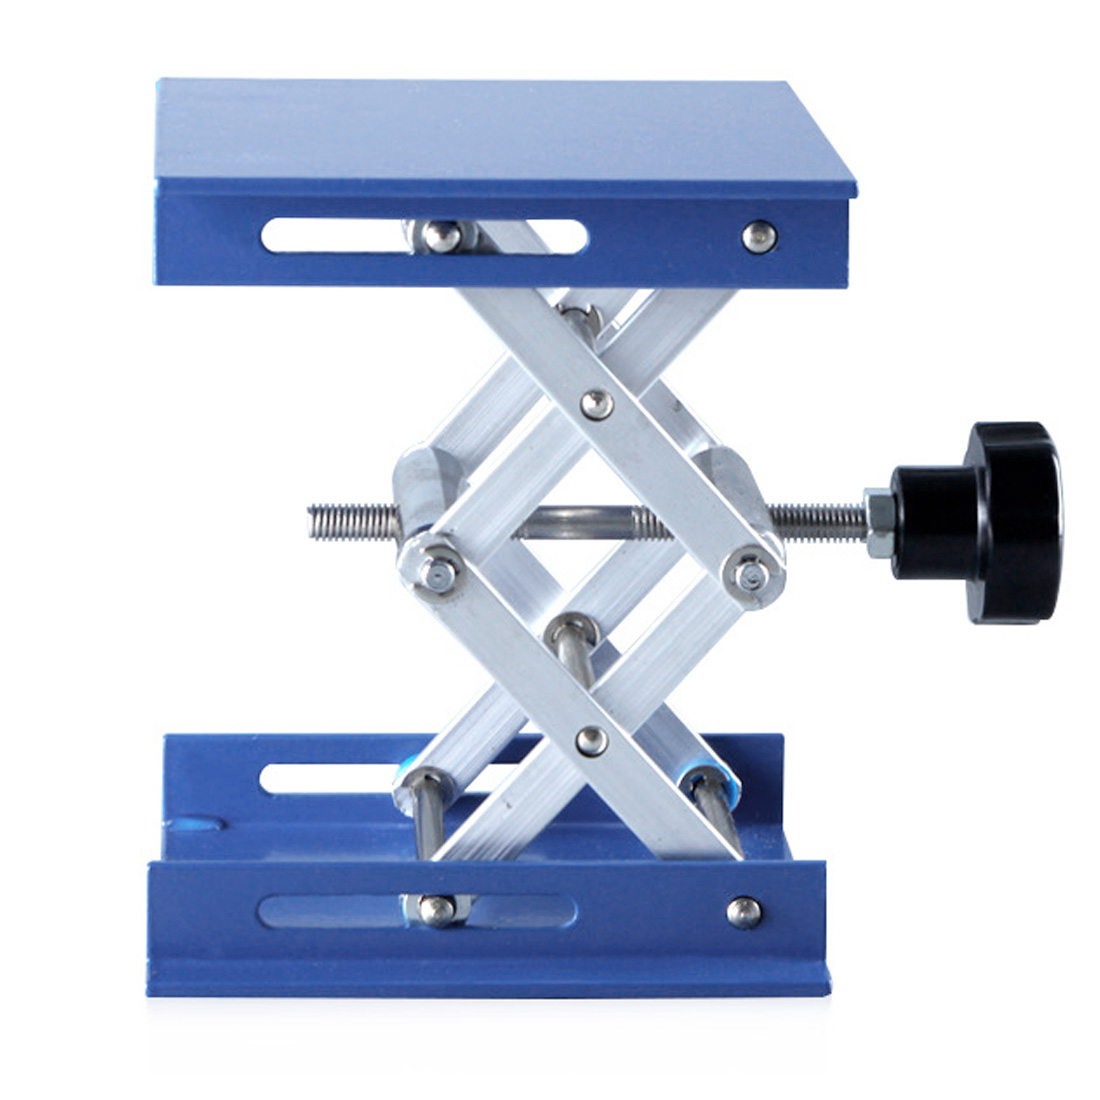 Woodworking Engraving Lab Lifting Stand Rack Lift Platform Aluminum Router Lift Table 100*100mm